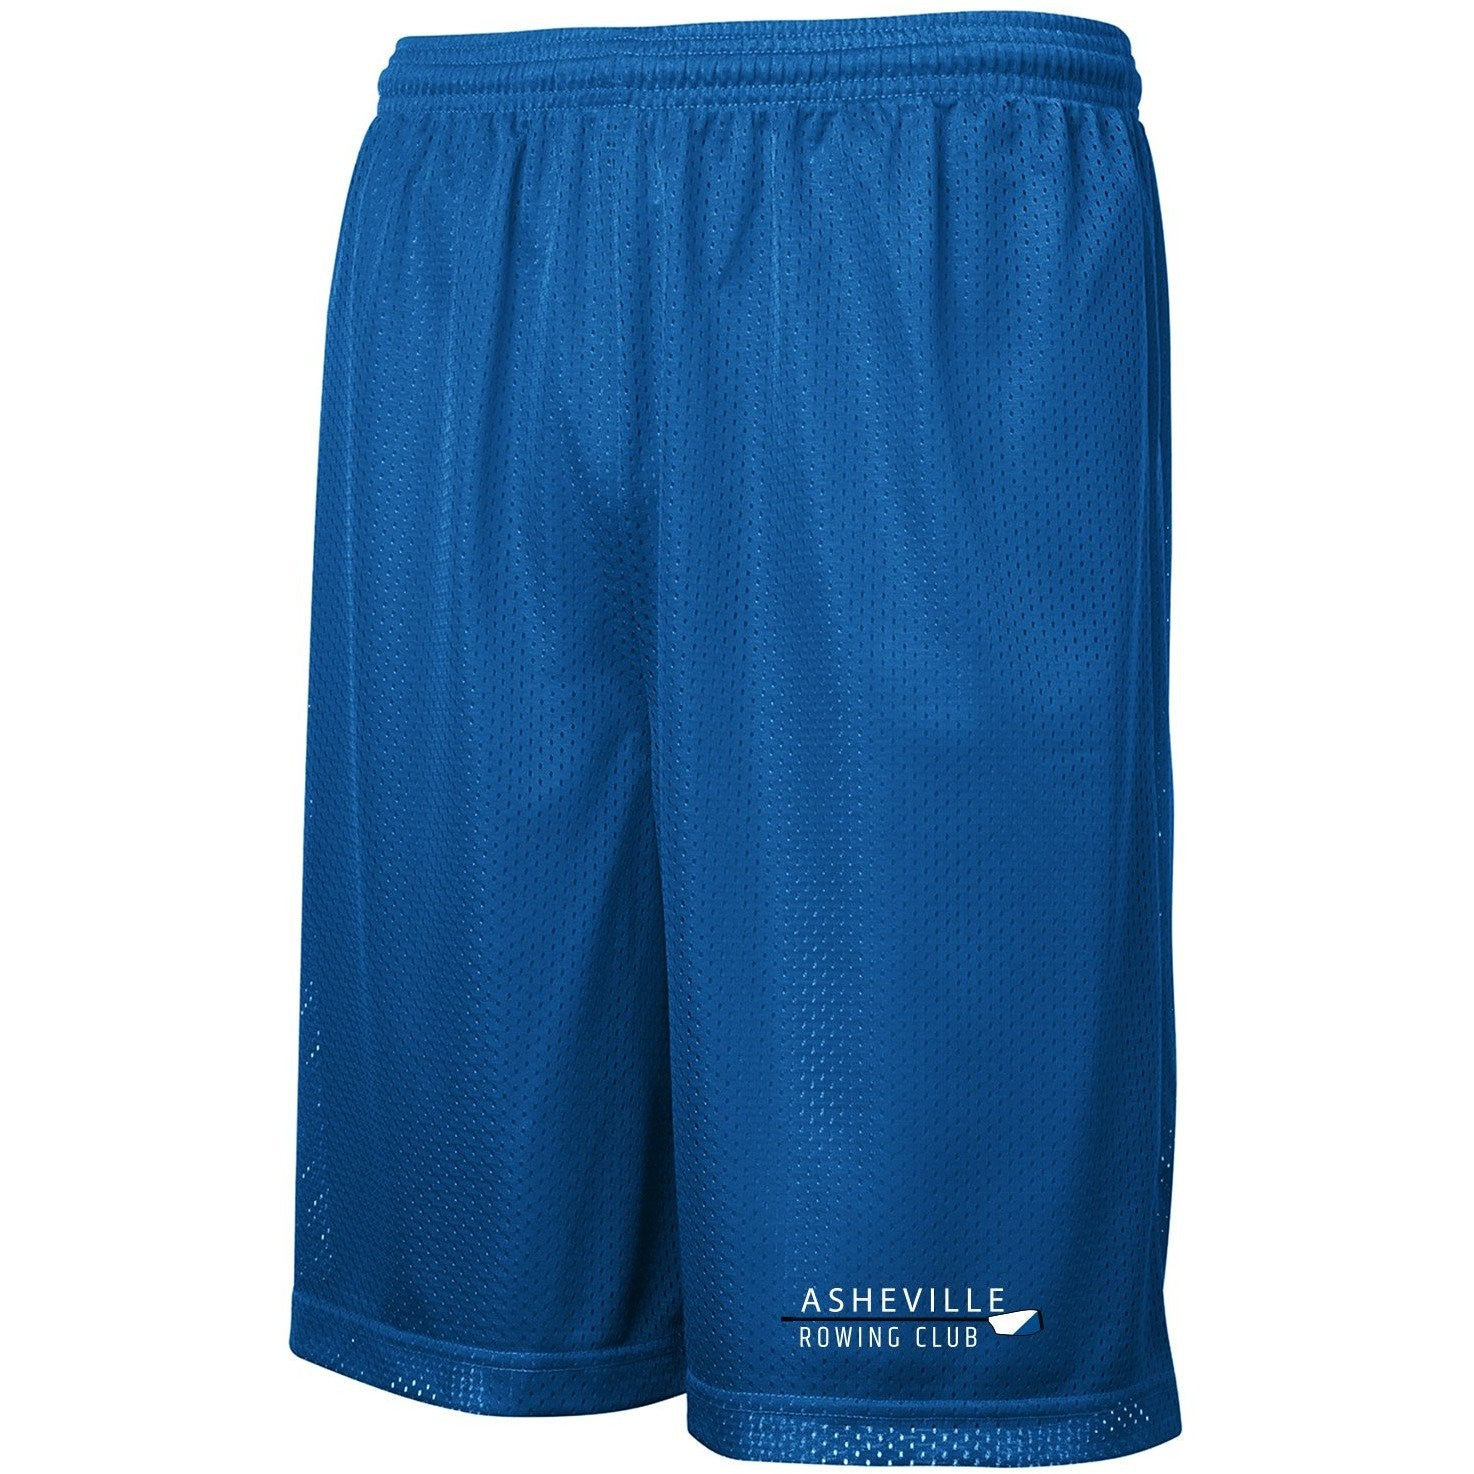 Custom Asheville Rowing Club Mesh Shorts